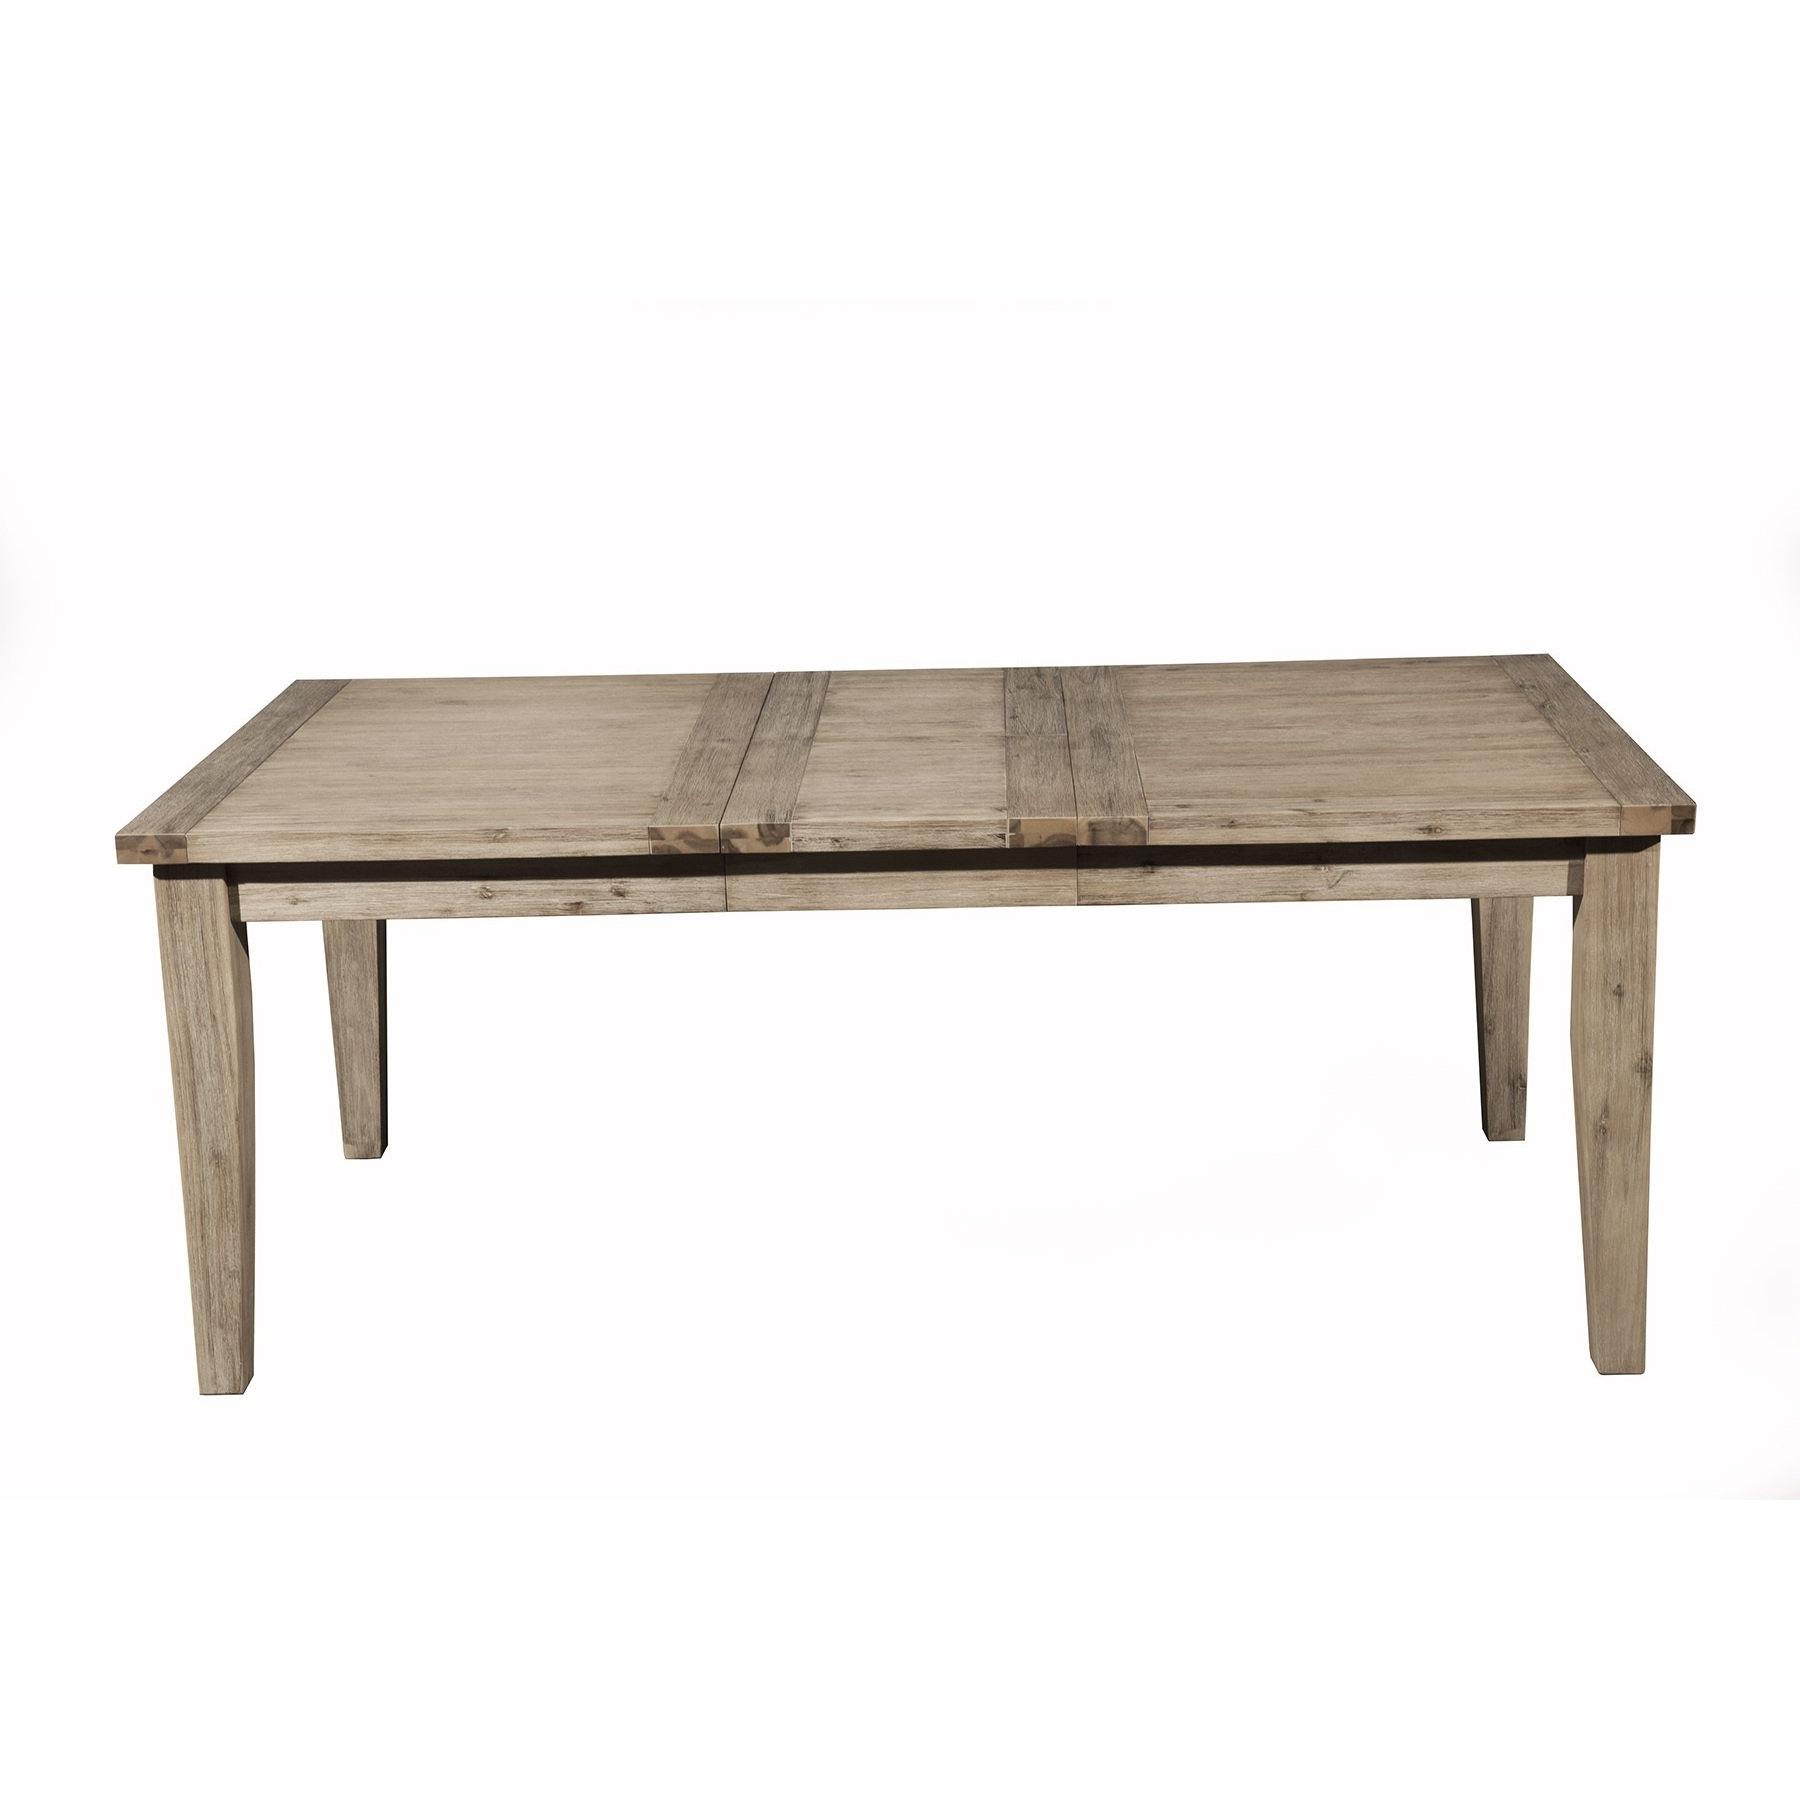 Newest Aspen Dining Tables With Regard To Shop Alpine Aspen Extension Dining Table – Free Shipping Today (View 20 of 25)